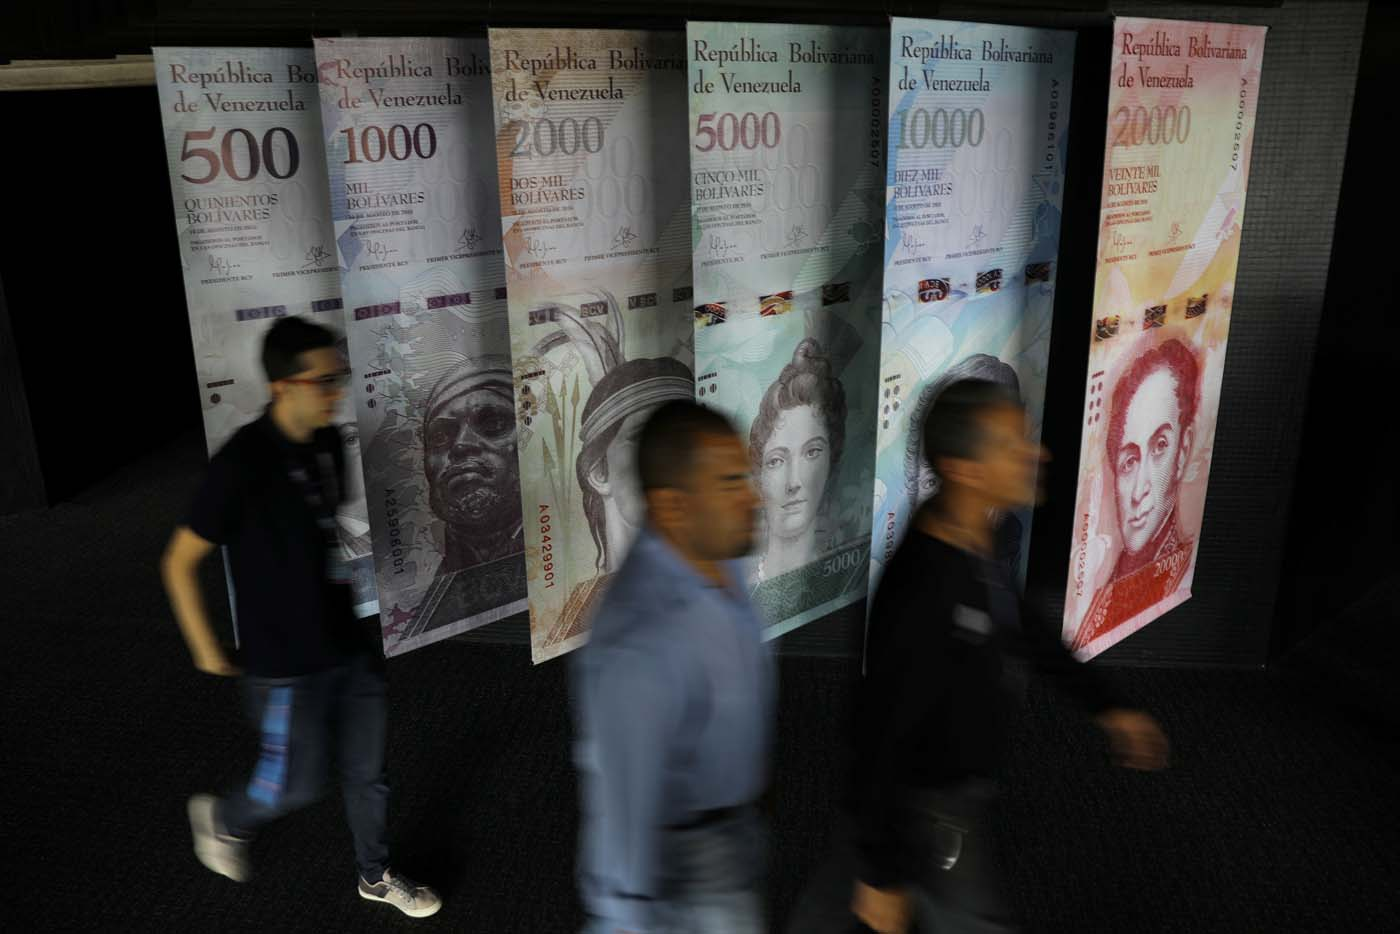 People walk by banners of Venezuelan bolivar notes displayed at the Venezuelan Central Bank building in Caracas, Venezuela May 23, 2017. REUTERS/Carlos Barria